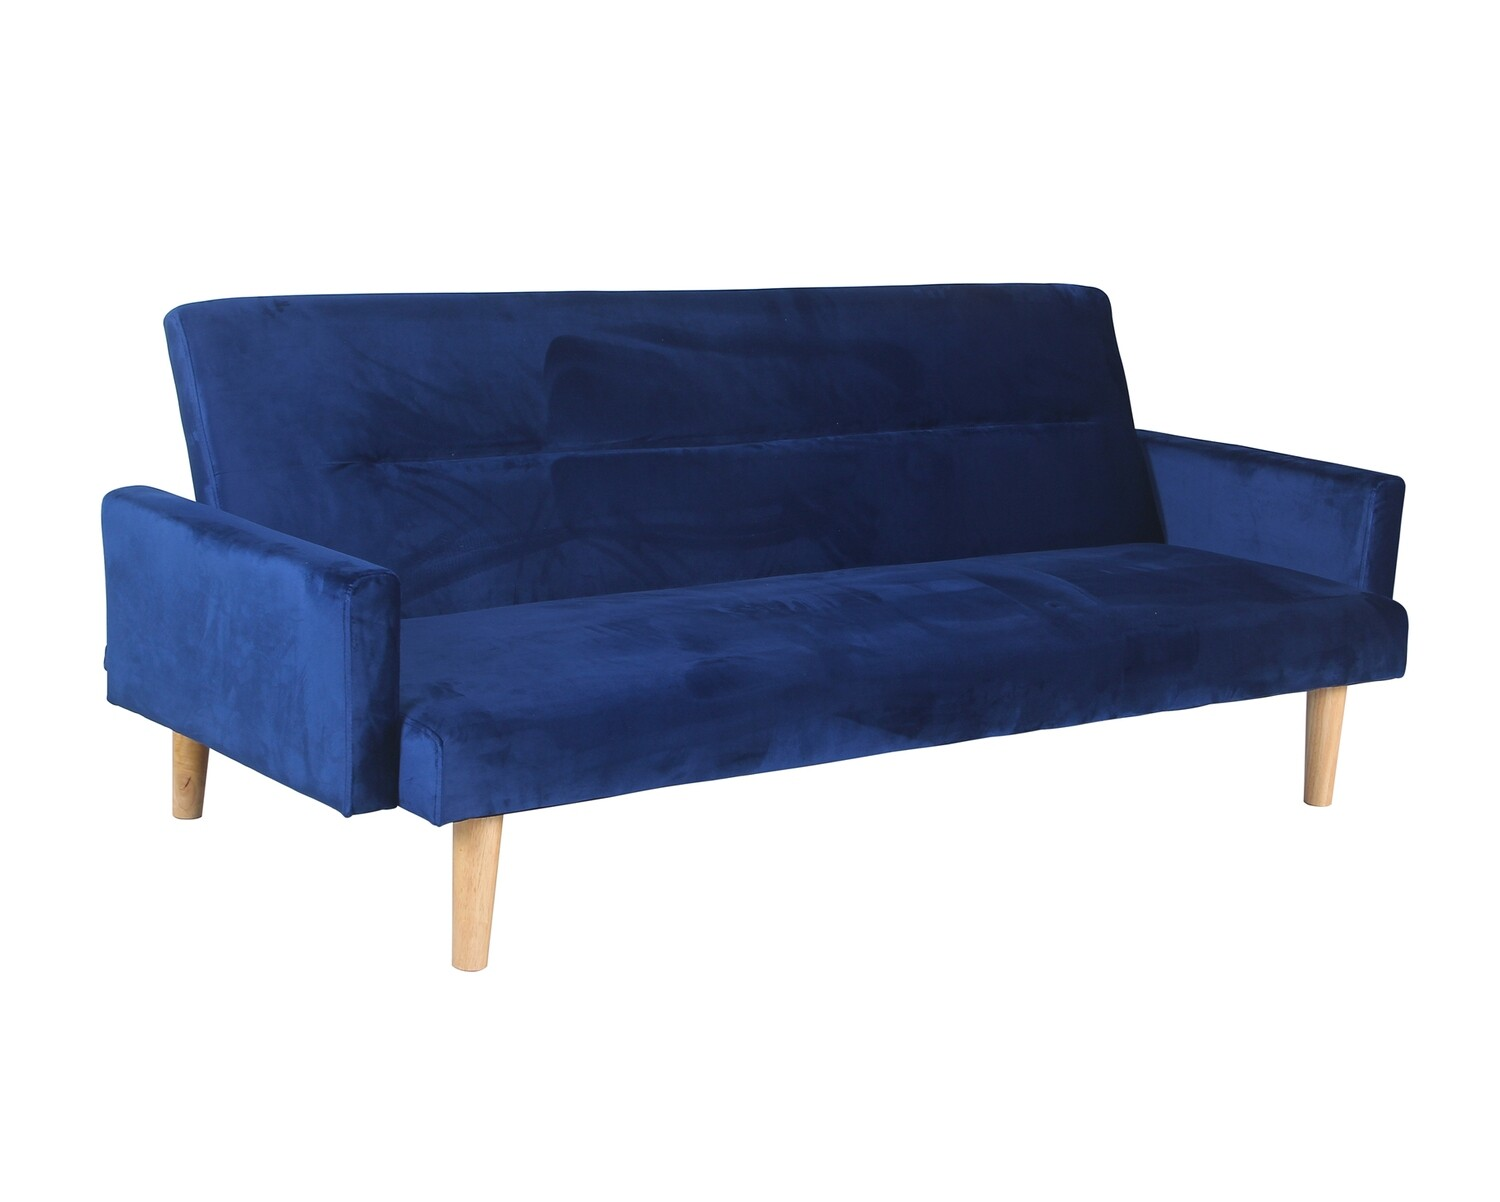 Flotti Alexandra Sofa Bed (Blue, Red, Grey)